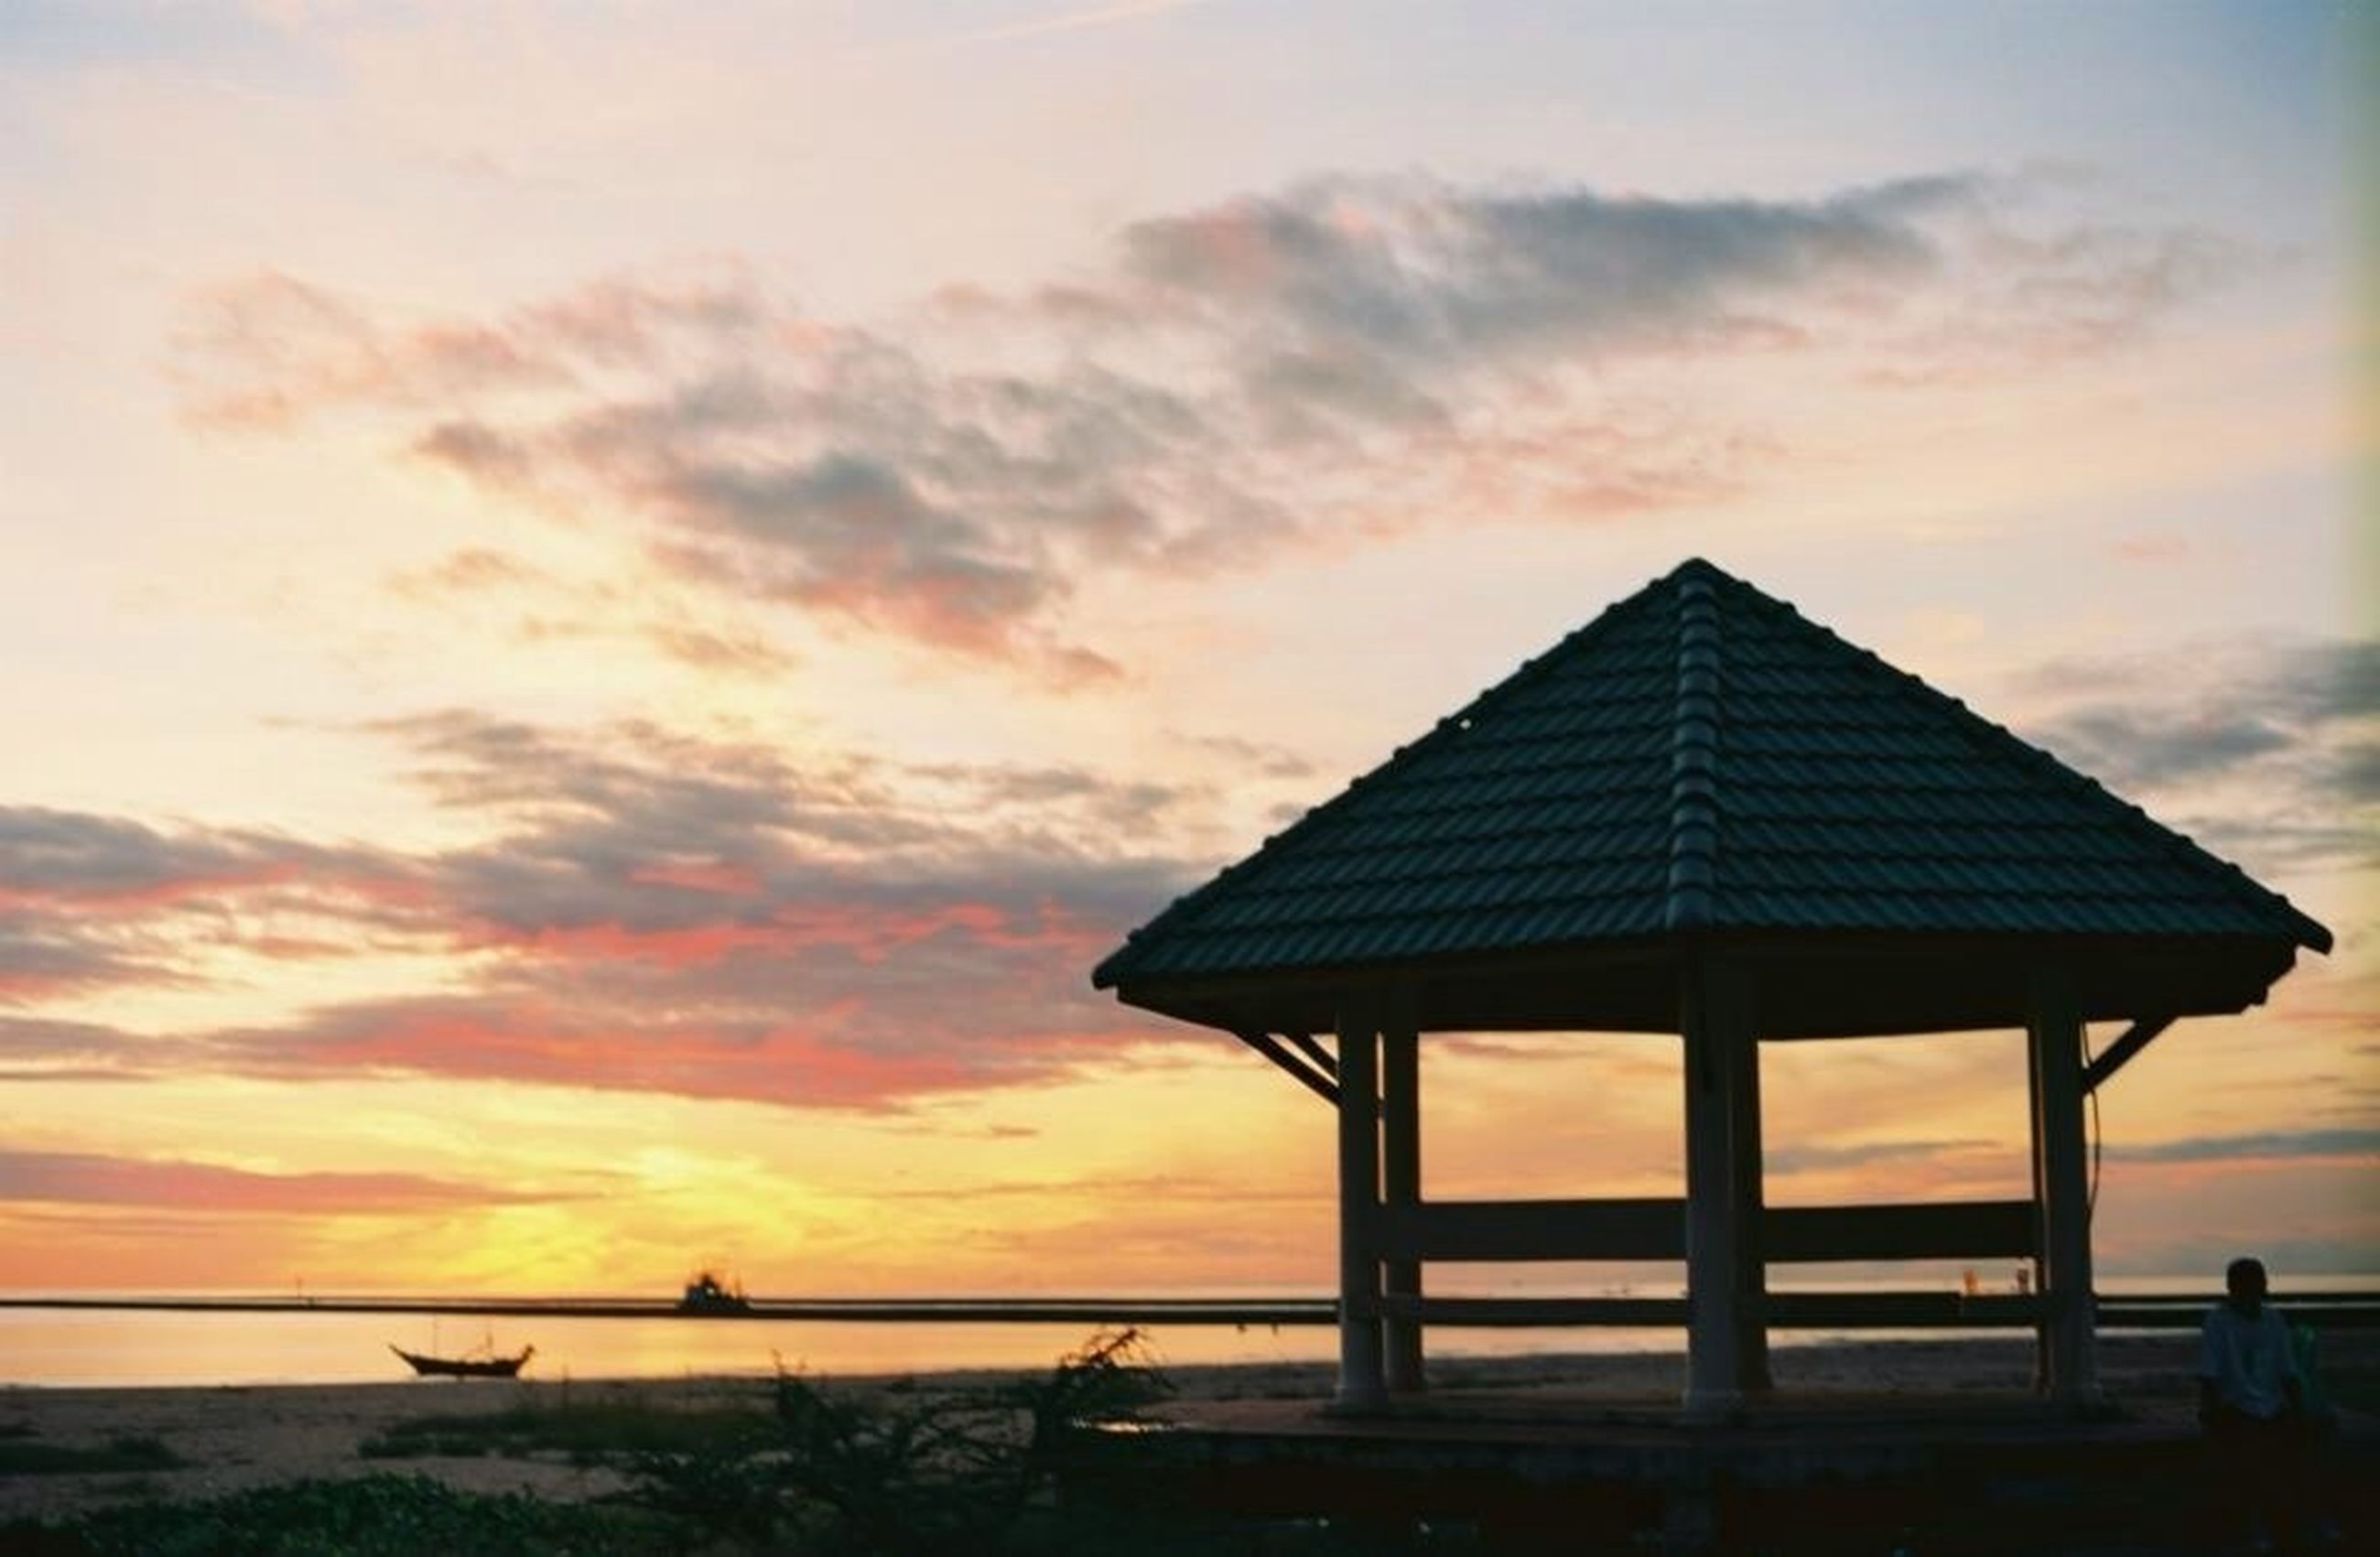 sunset, sky, orange color, sea, scenics, horizon over water, built structure, tranquility, tranquil scene, beach, architecture, beauty in nature, cloud - sky, nature, silhouette, idyllic, cloud, water, building exterior, shore